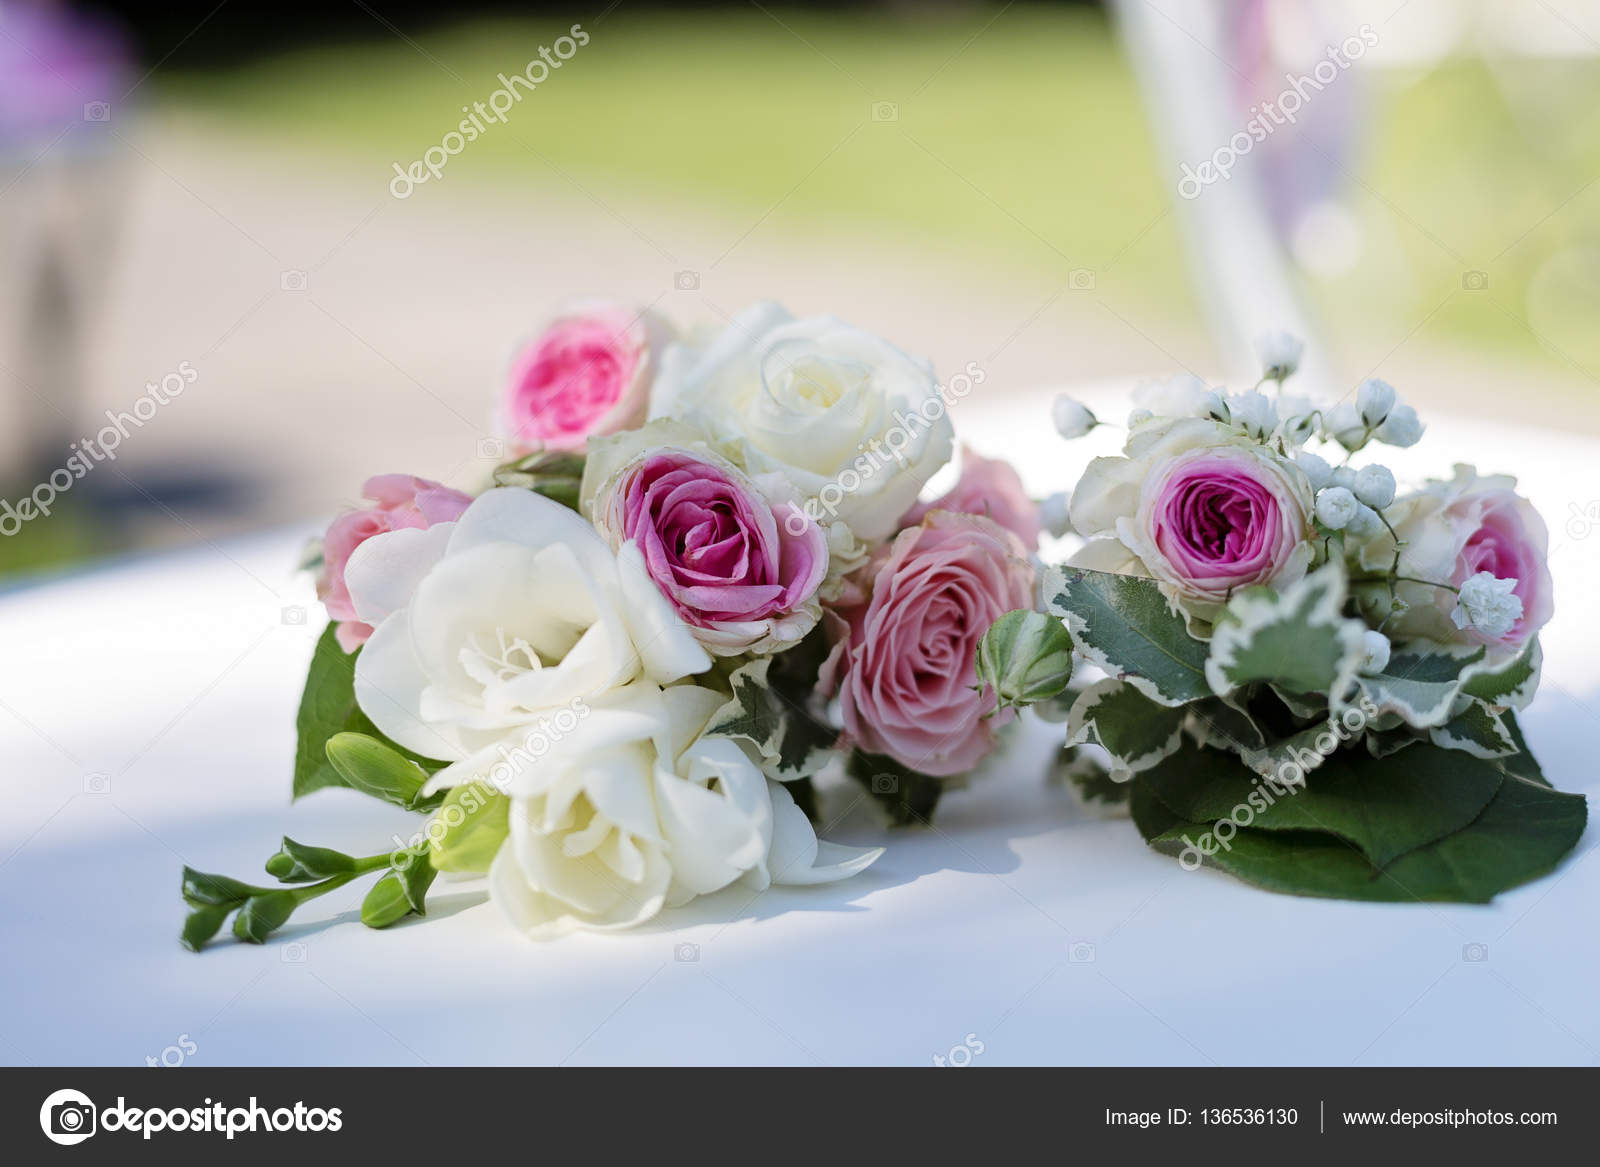 Close up of small flower bouquets stock photo victoriasky1 close up of small flower bouquets photo by victoriasky1 izmirmasajfo